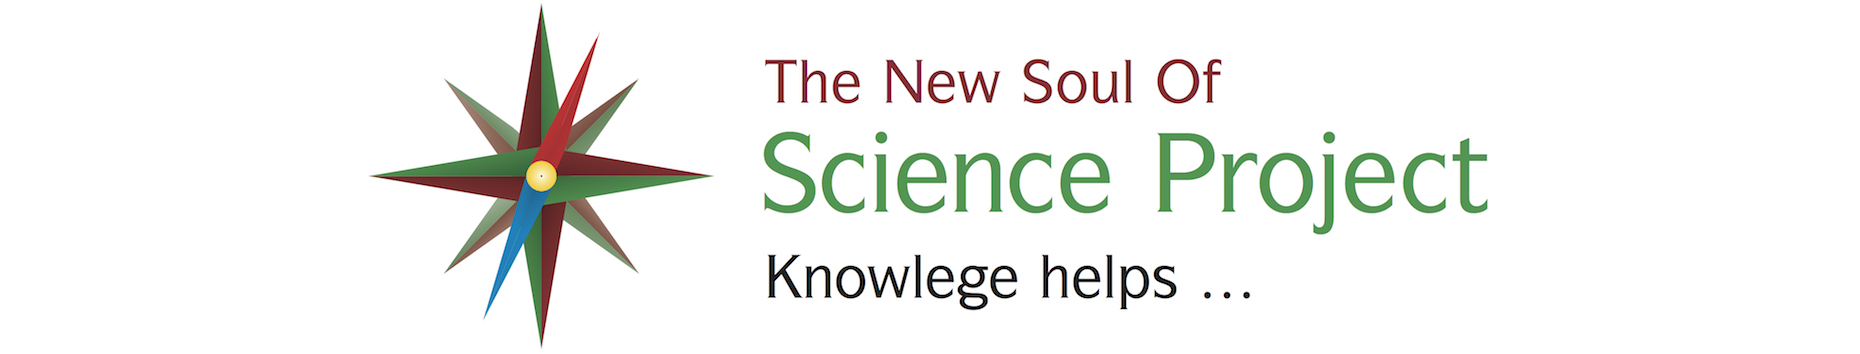 The New Soul Of Science Project, Knowlege helps …